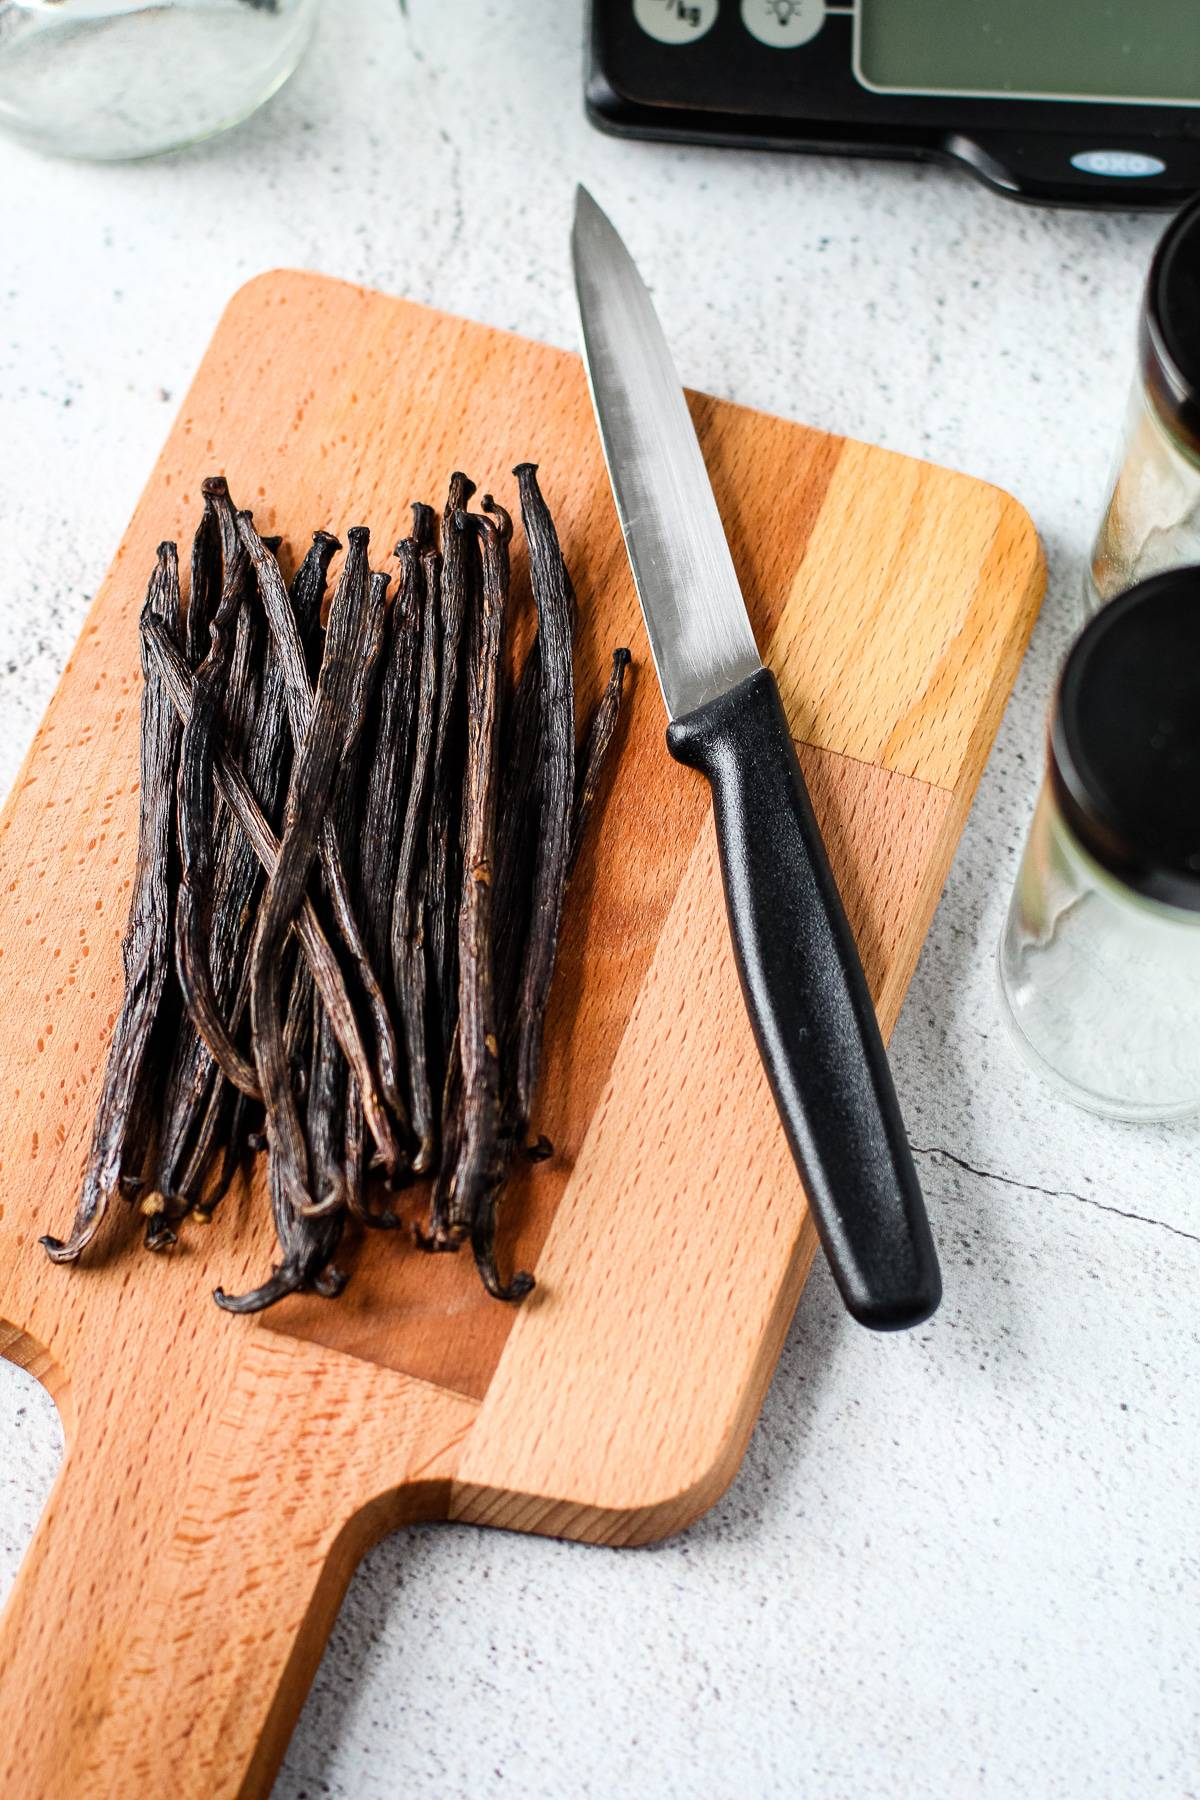 Whole vanilla beans on a cutting board with a pairing knife.